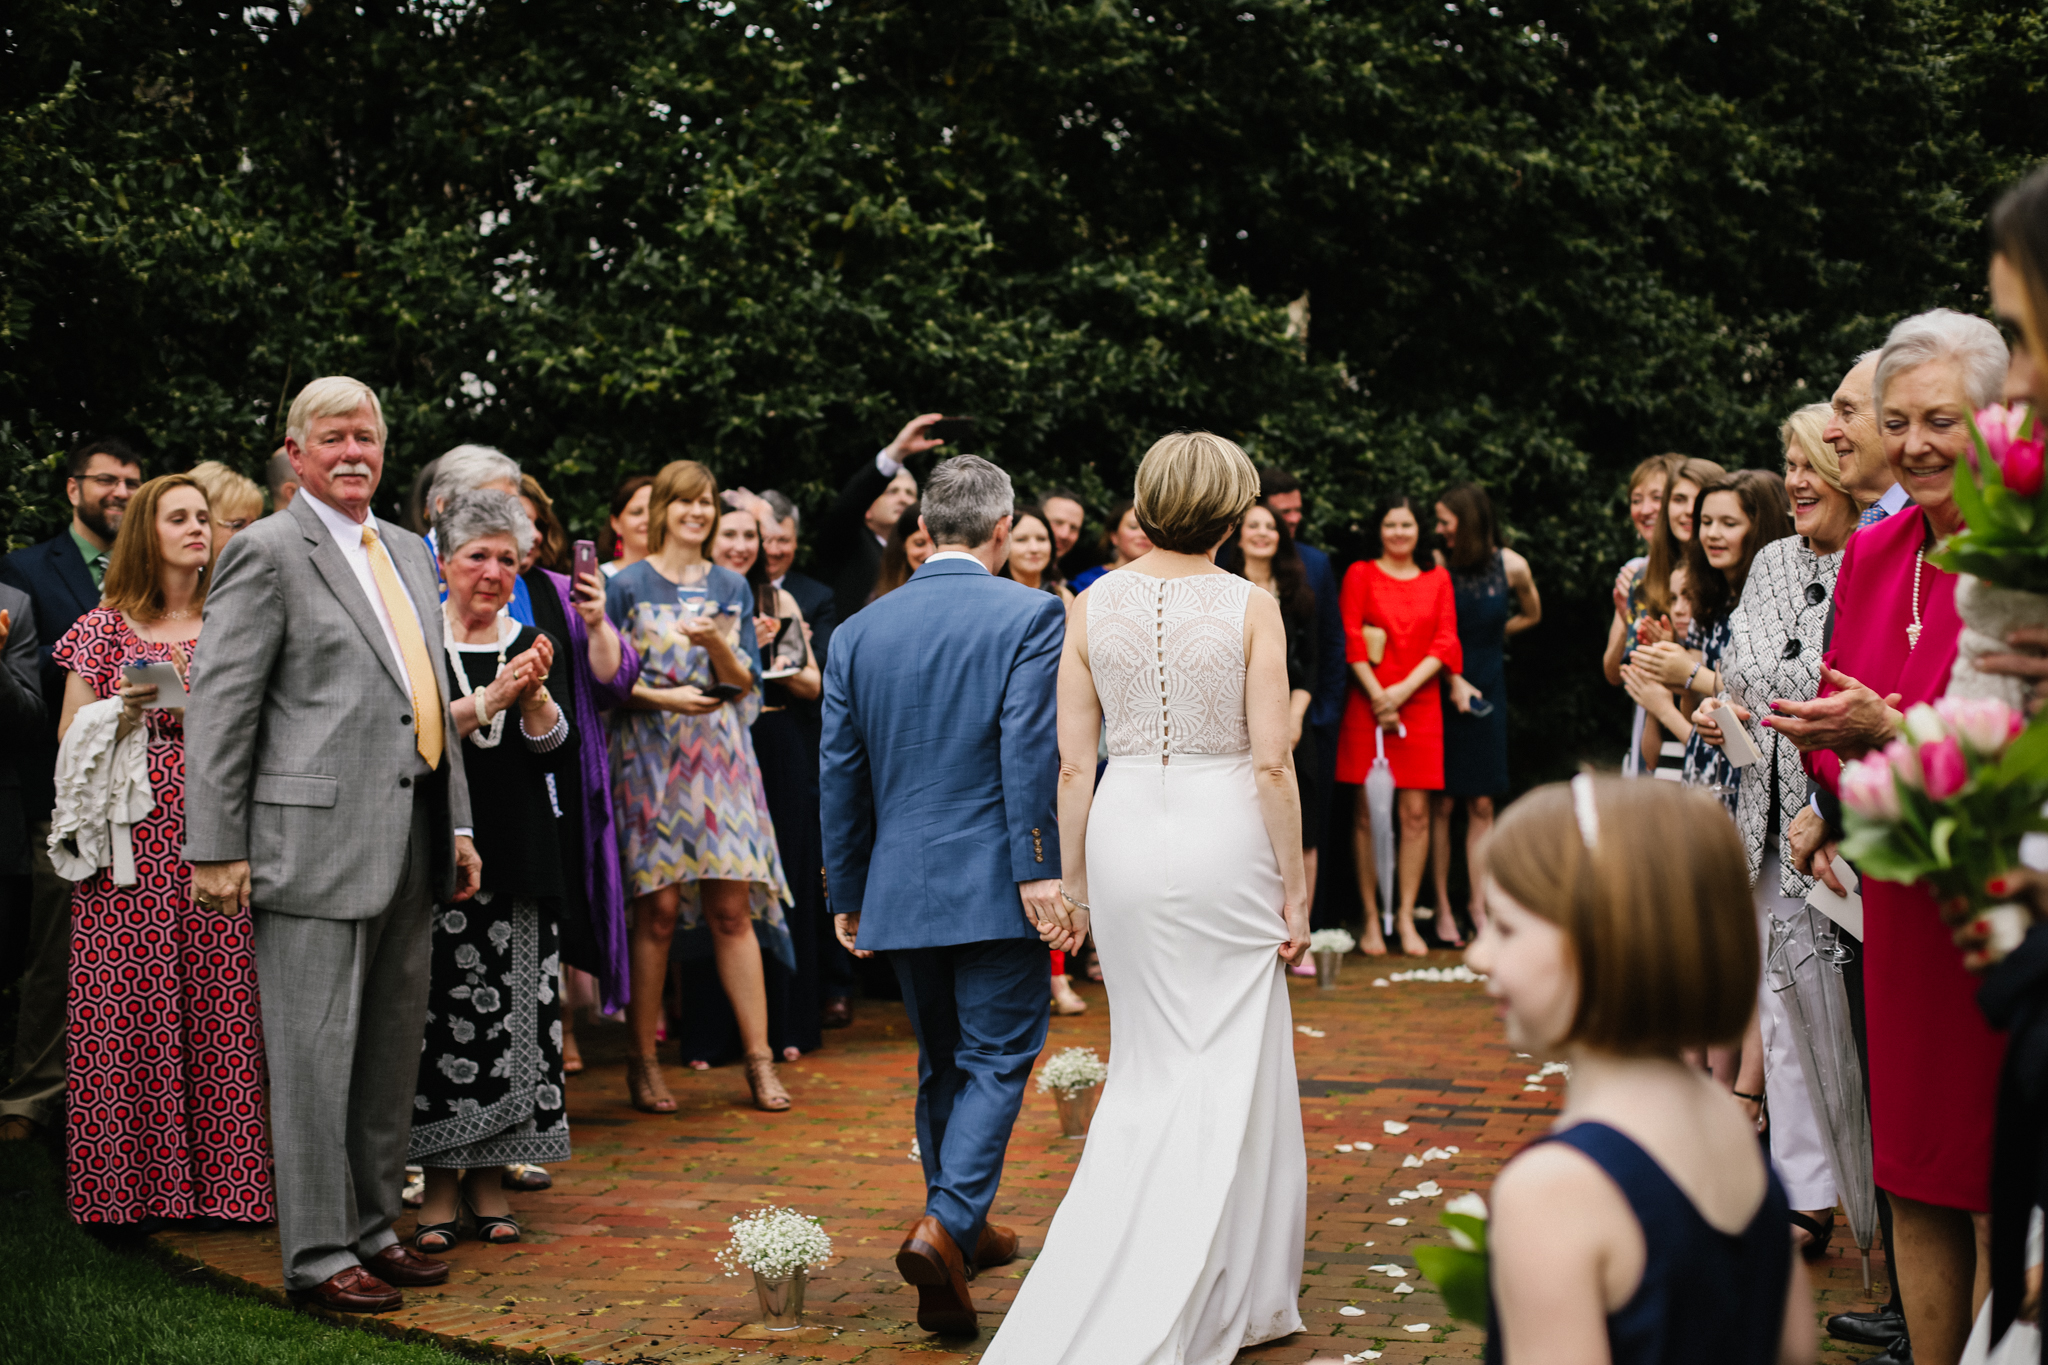 cook_wedding_richmond_virginia_rebecca_burt_photography-50.jpg